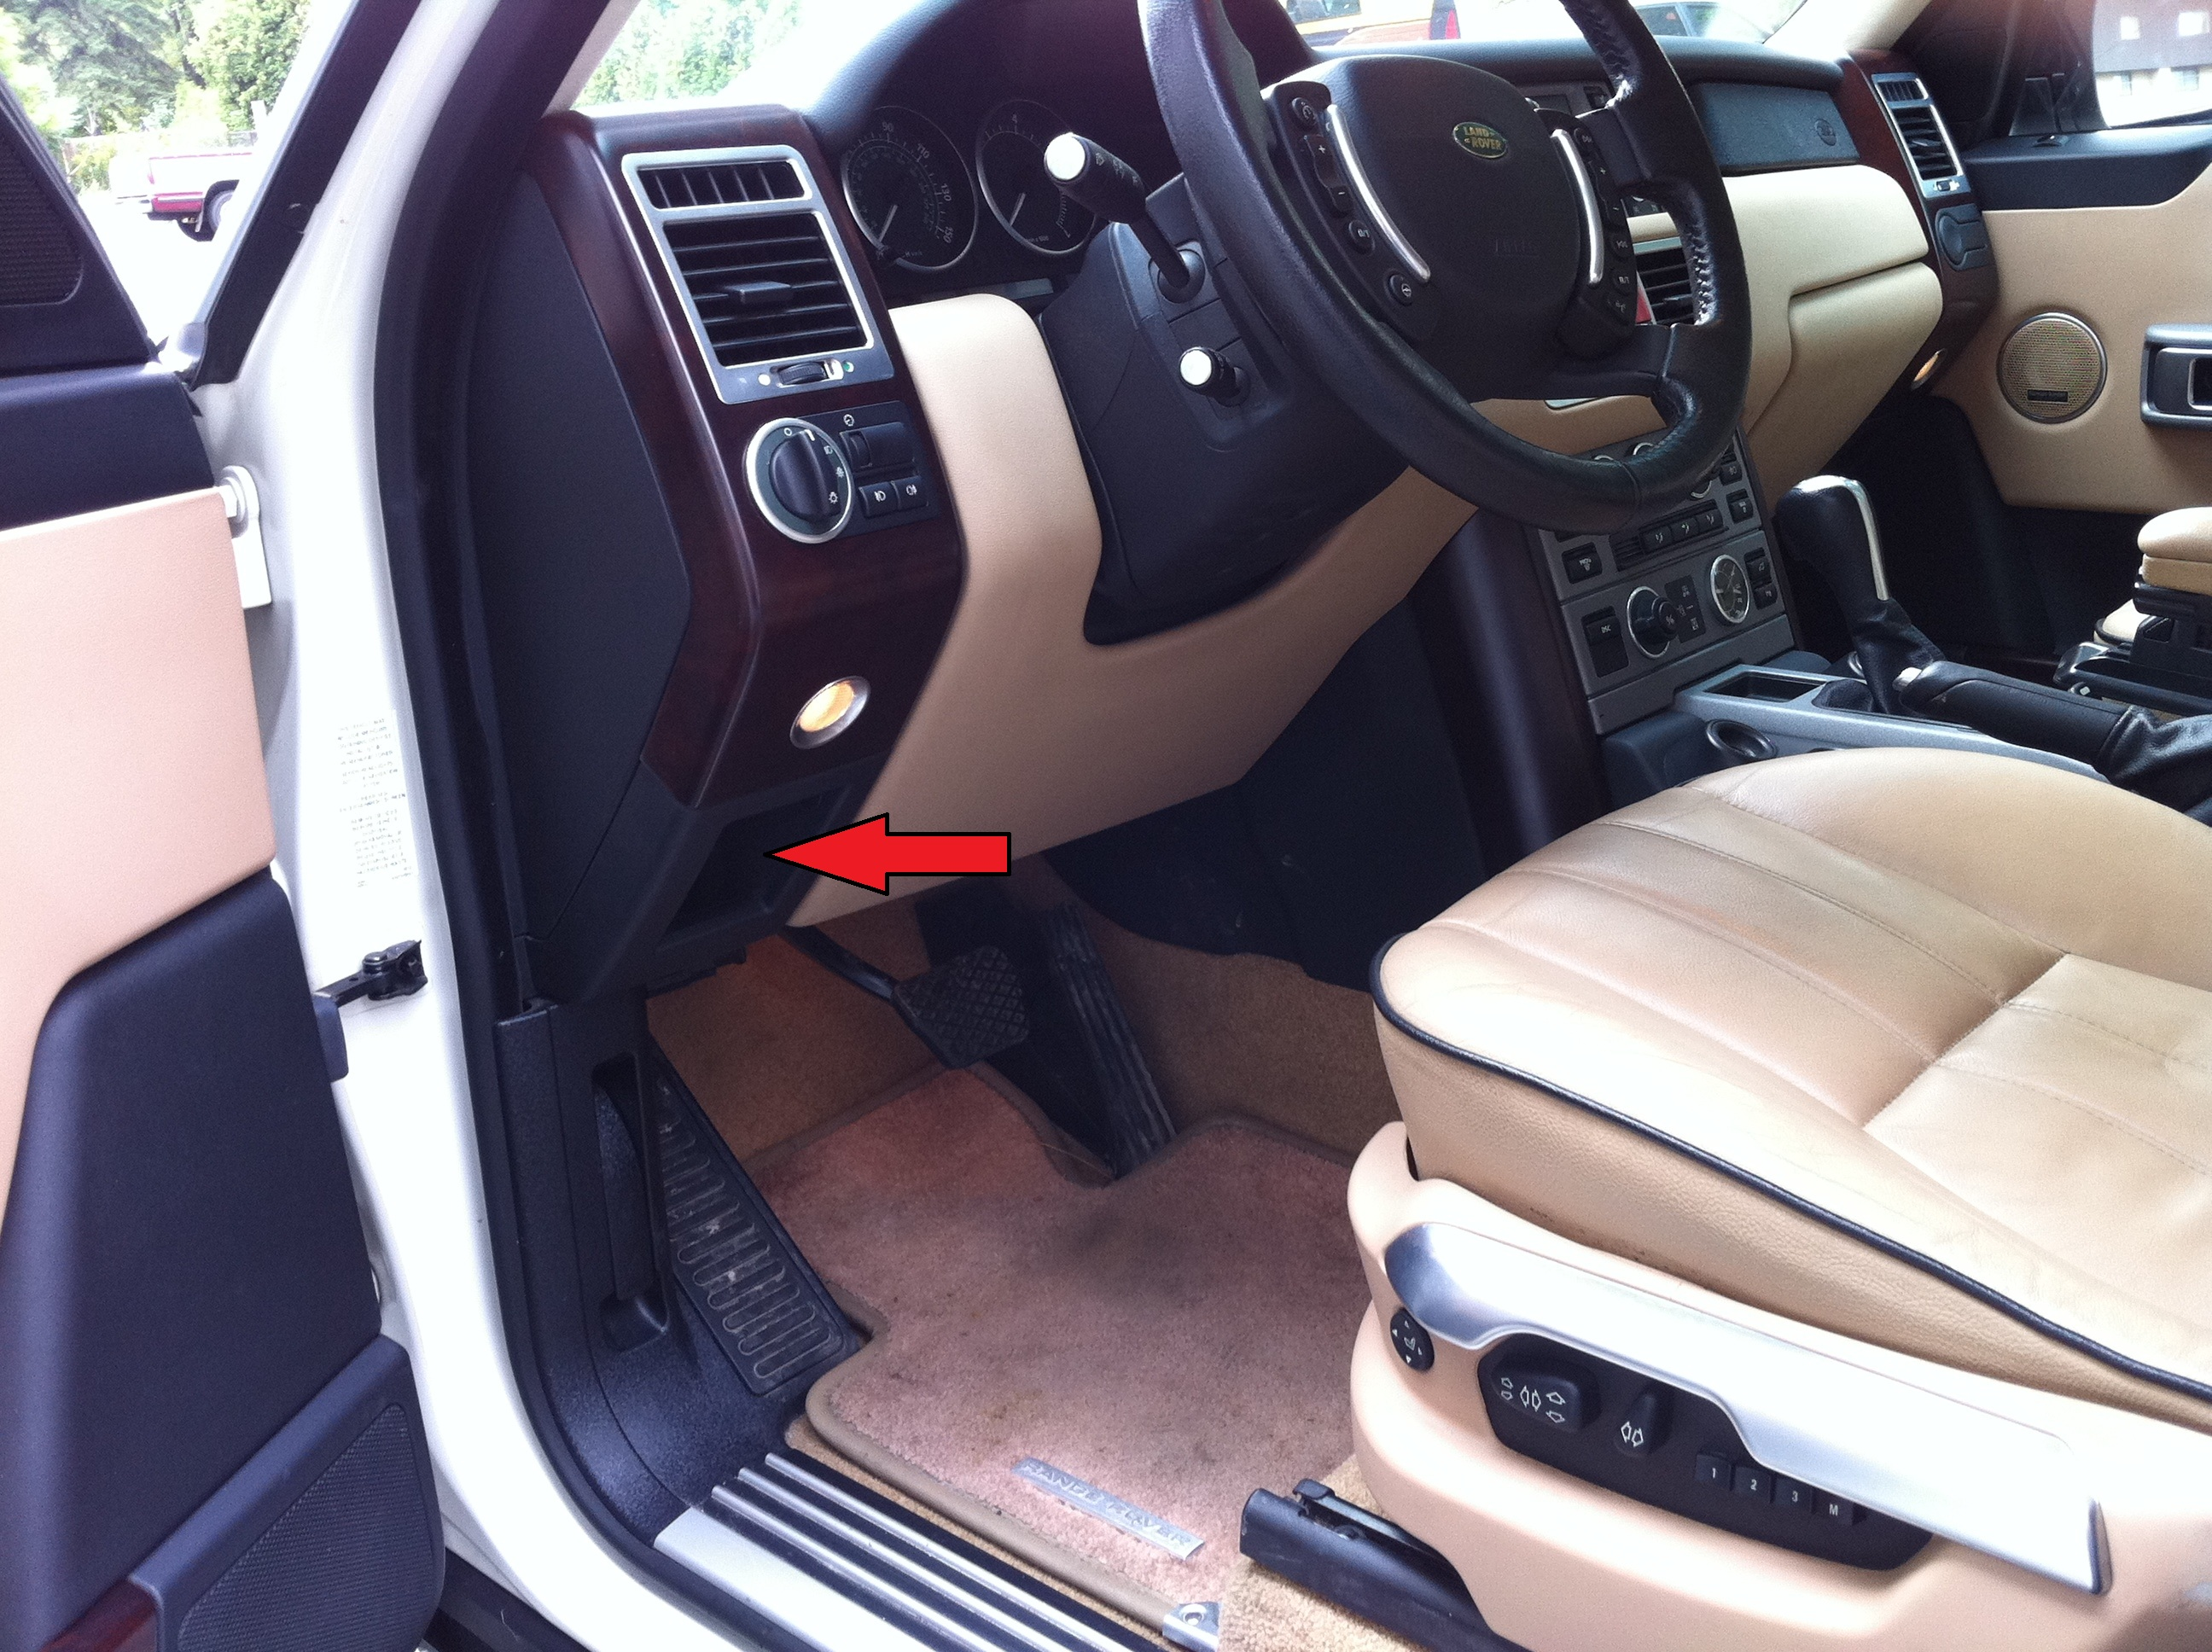 2015 Range Rover Fuse Box Diagram Wiring Master Blogs 99 Sport Images Gallery